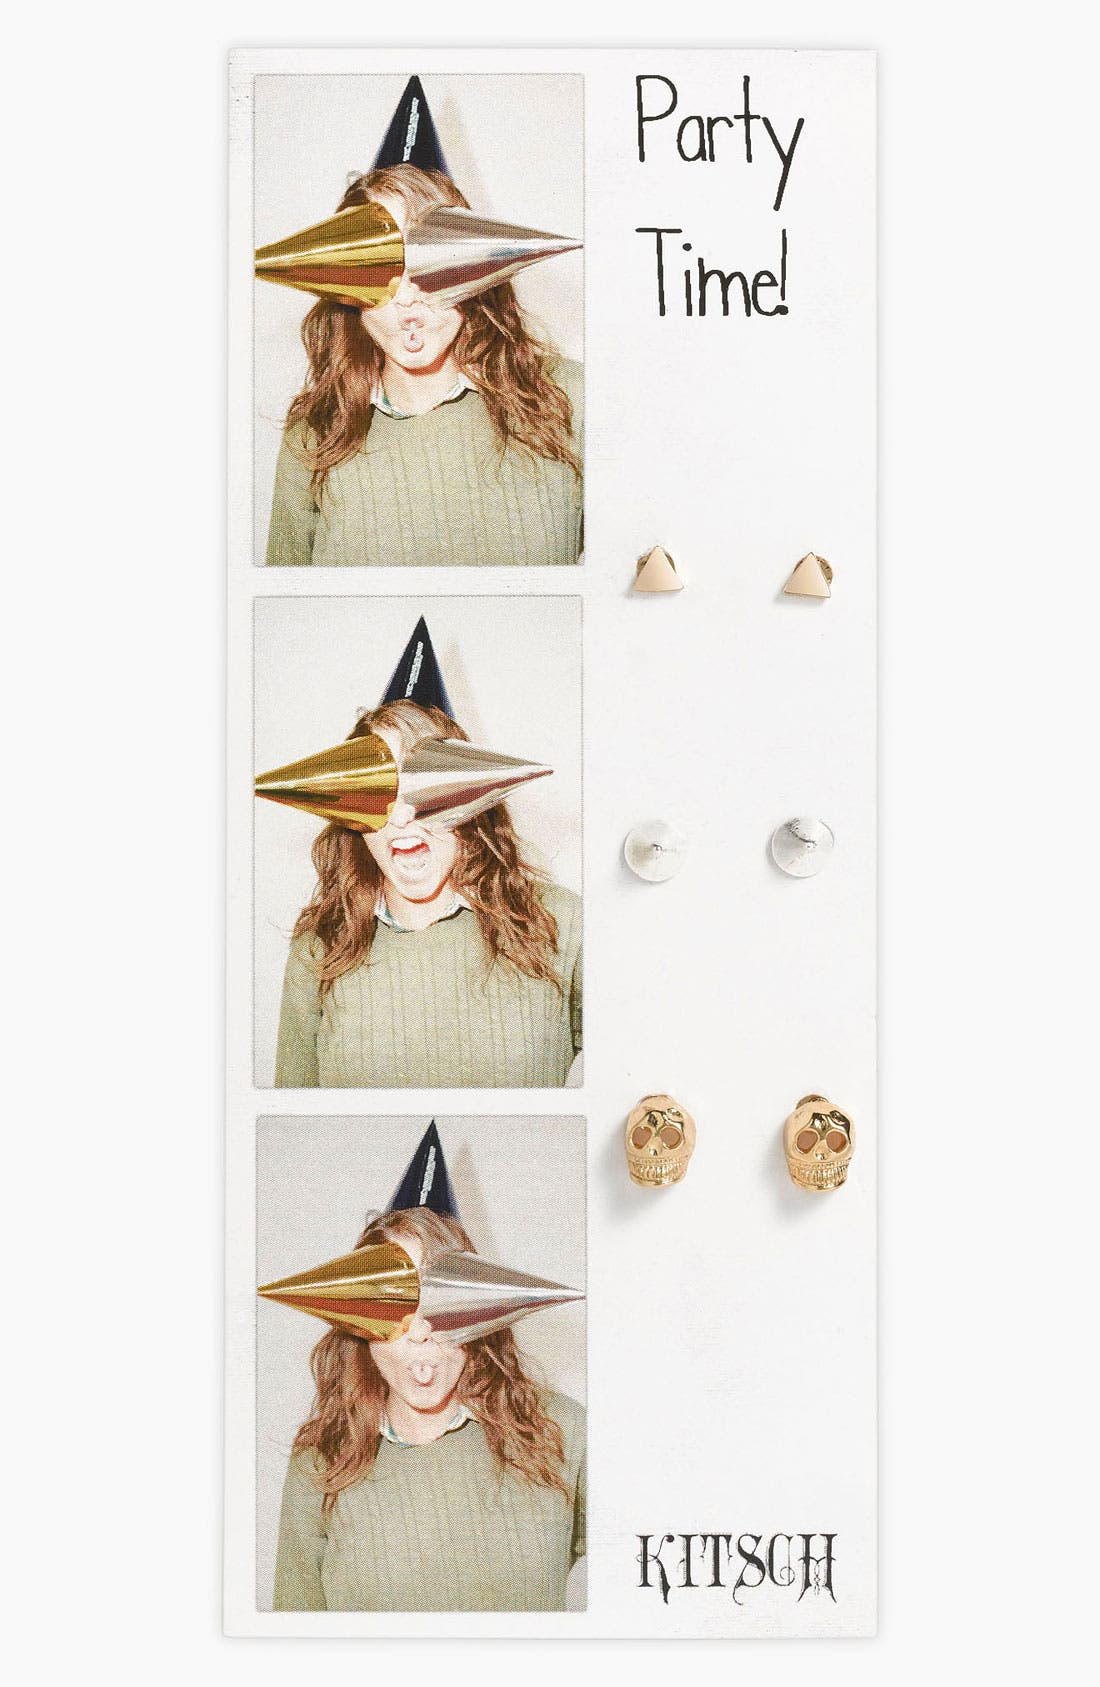 Alternate Image 1 Selected - Kitsch 'Party Time' Earrings (Set of 3)